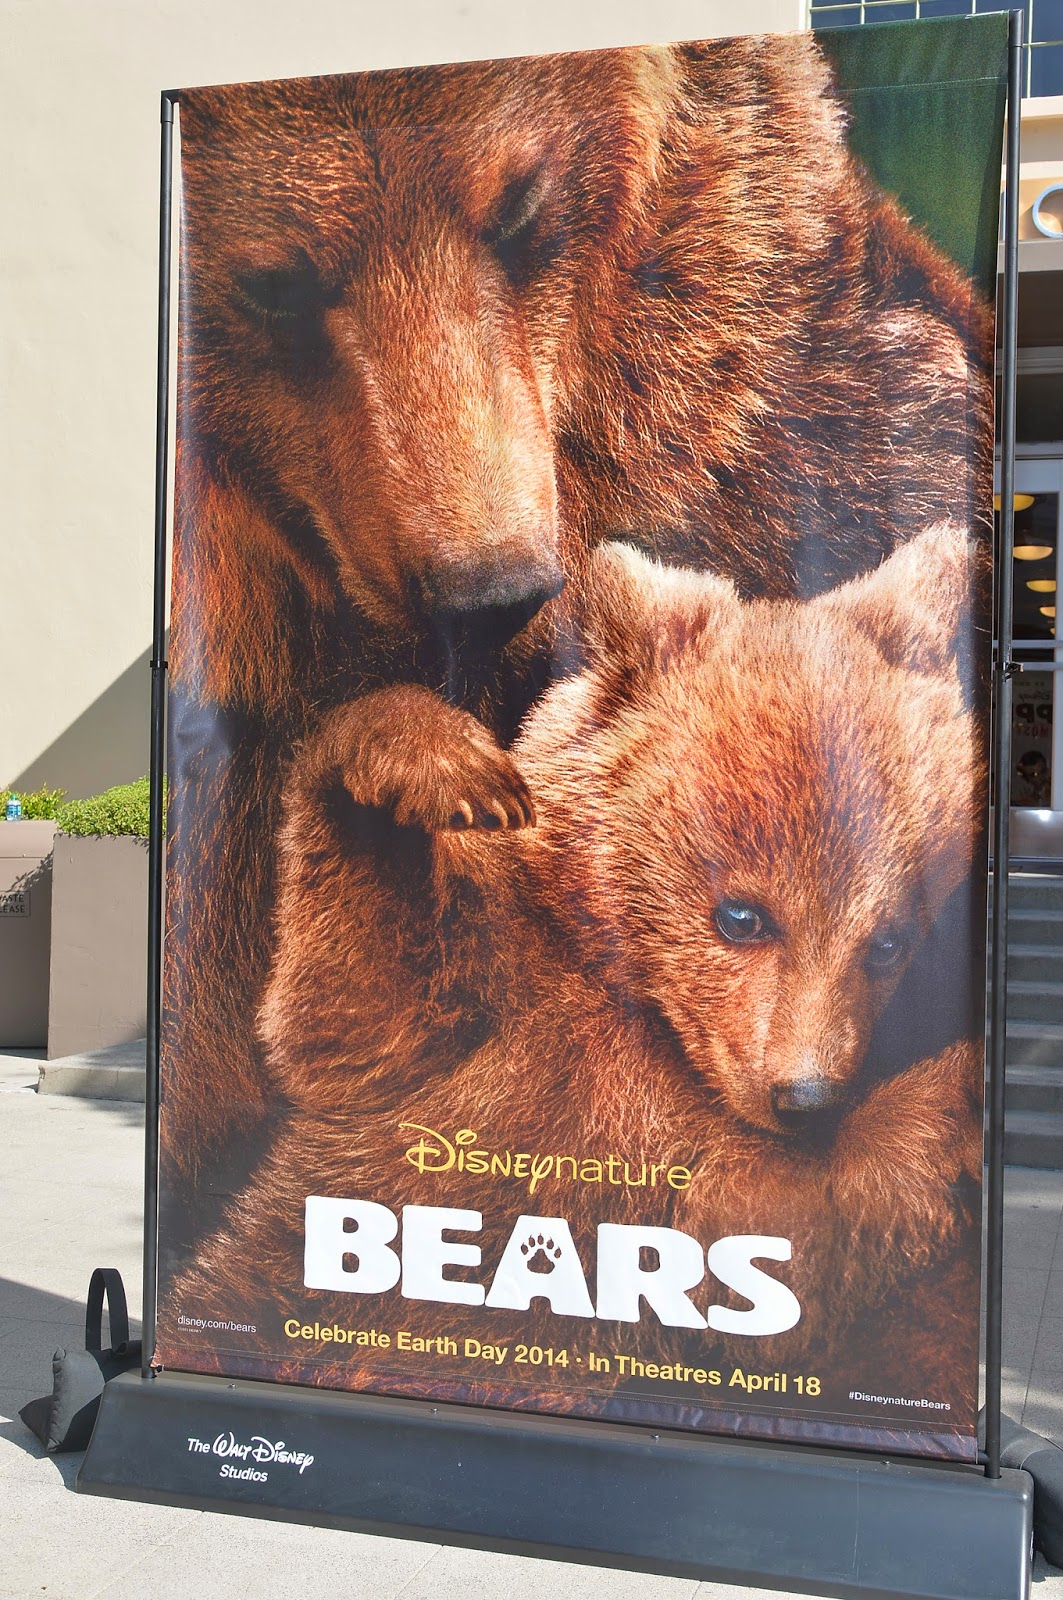 #Disneynature BEARS is Coming April 18th